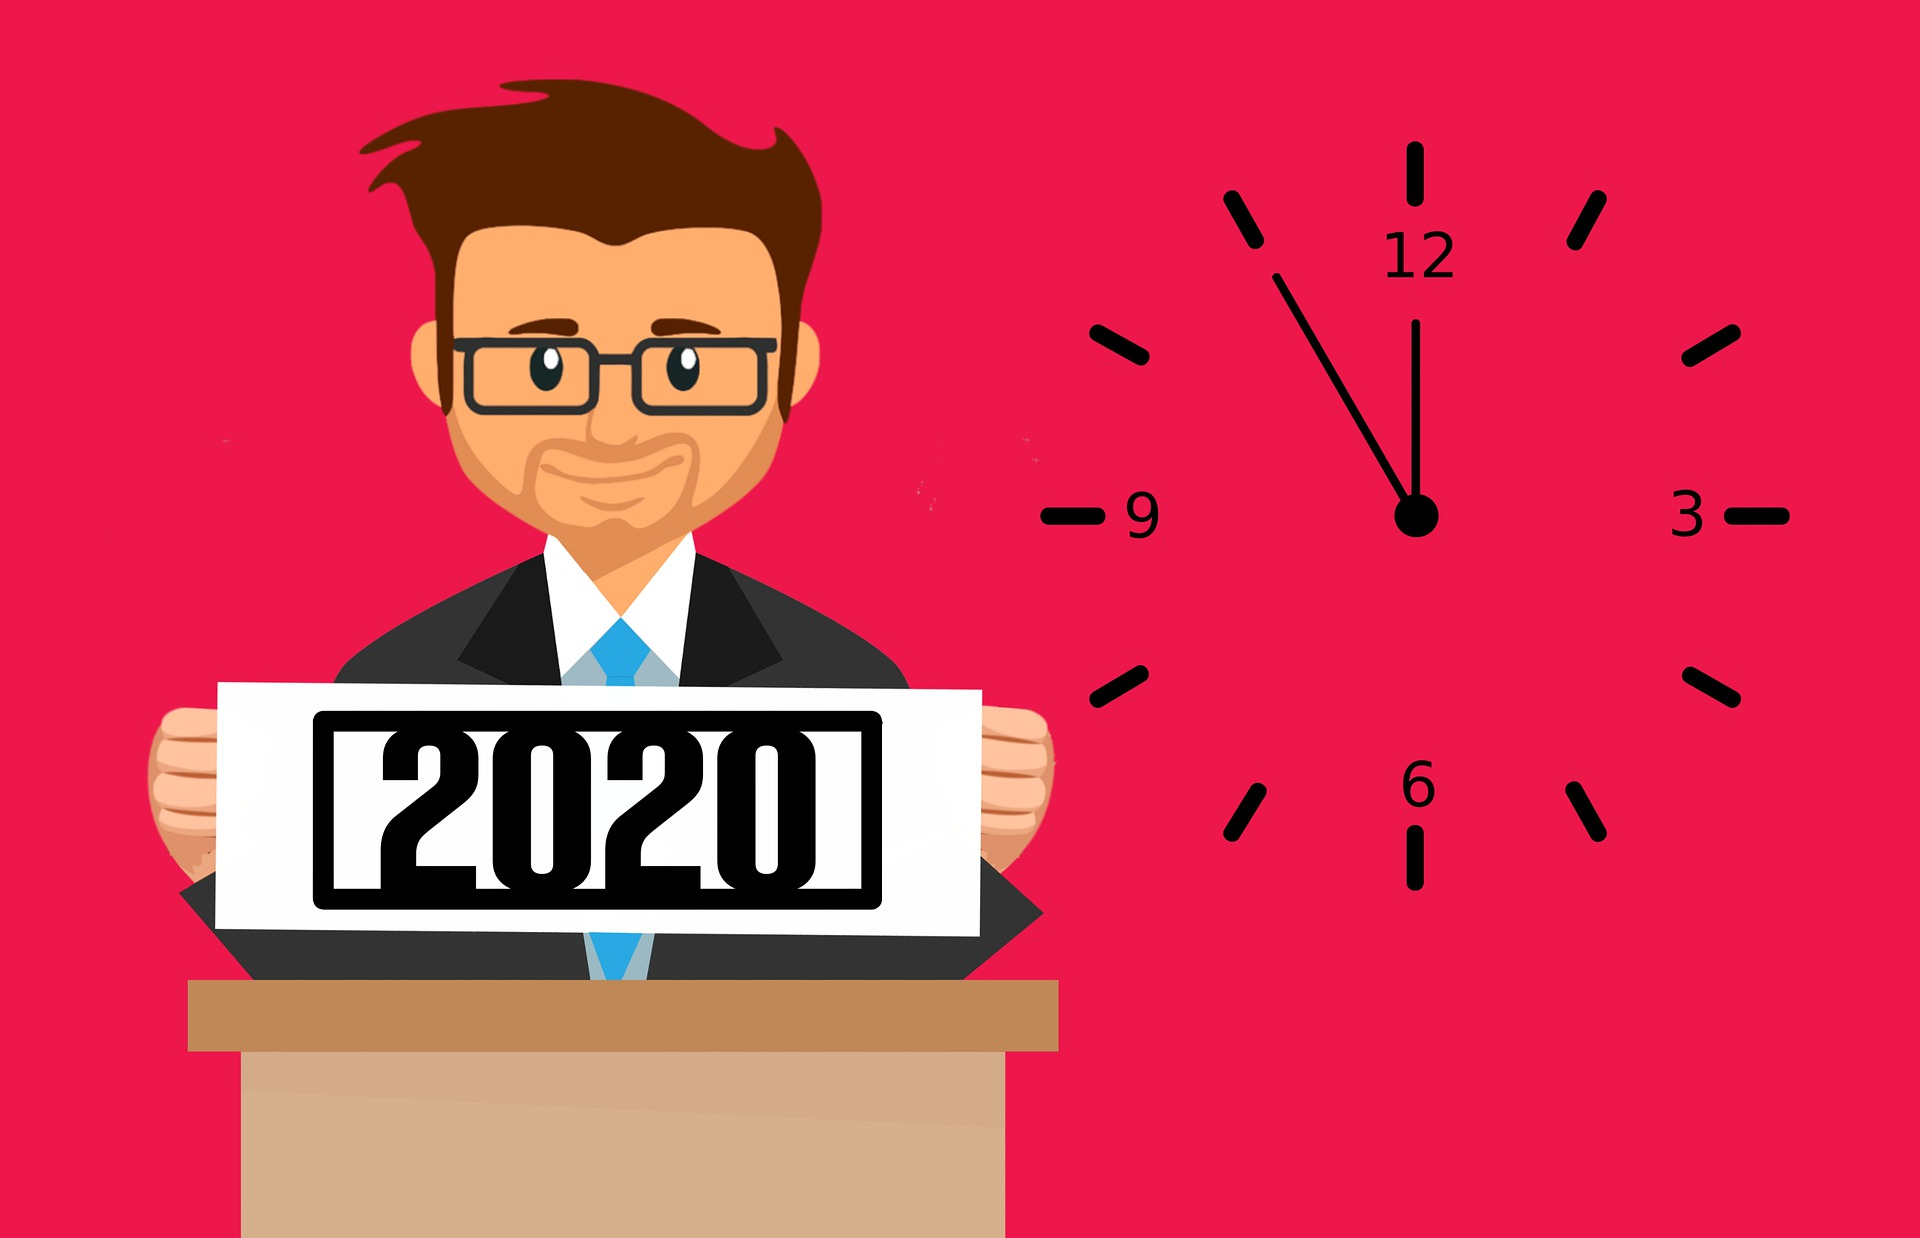 An image with red background showing a man holding a 2020 written banner to show trends in 2020